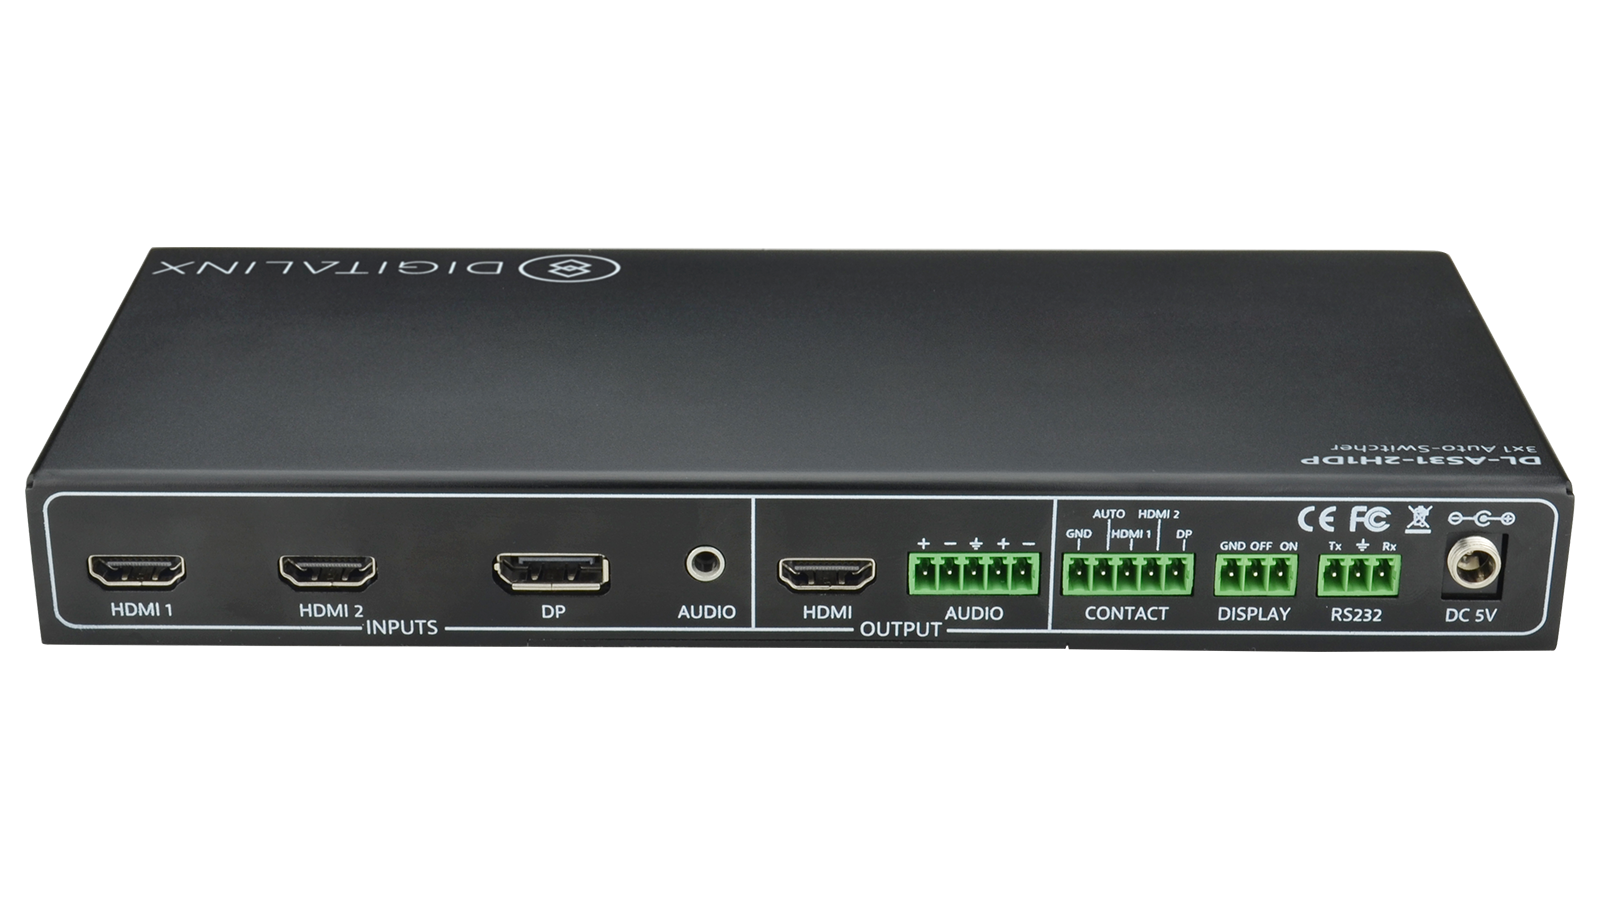 Dl As31 2h1dp 3x1 Auto Switcher With 2 Hdmi And 1 Displayport Input Id Cooling Tg 31